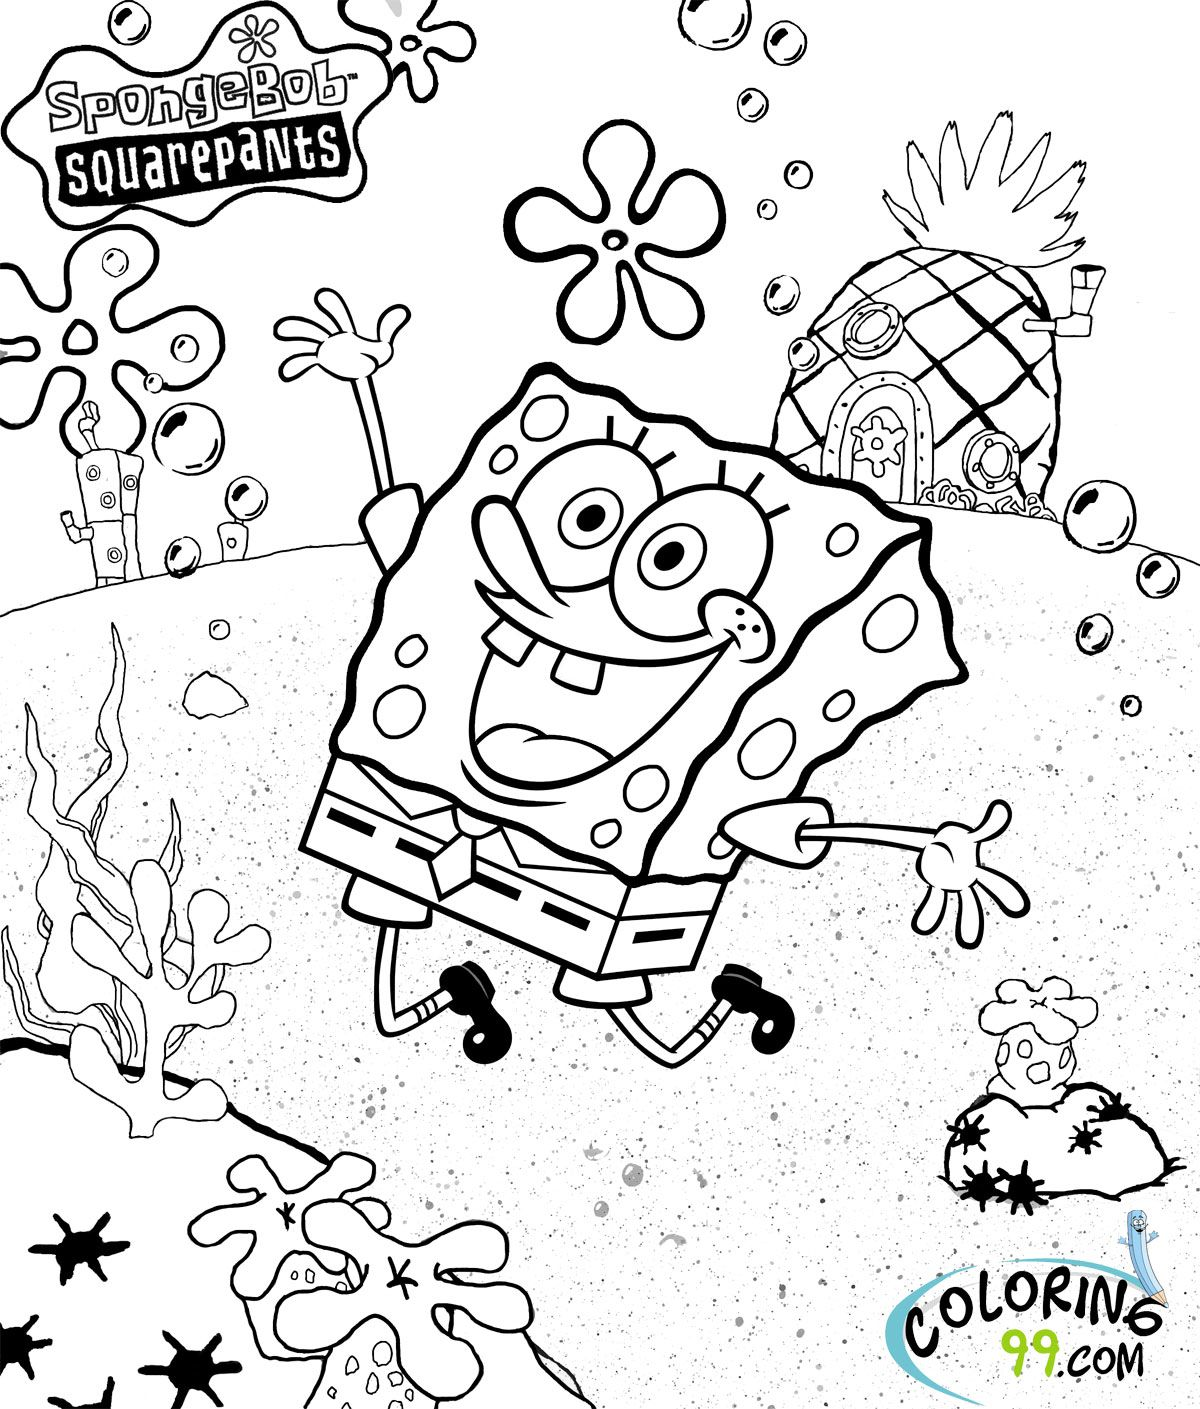 Printable coloring pages spongebob - Spongebob Coloring Pages Advance Spongebob Coloring Pages